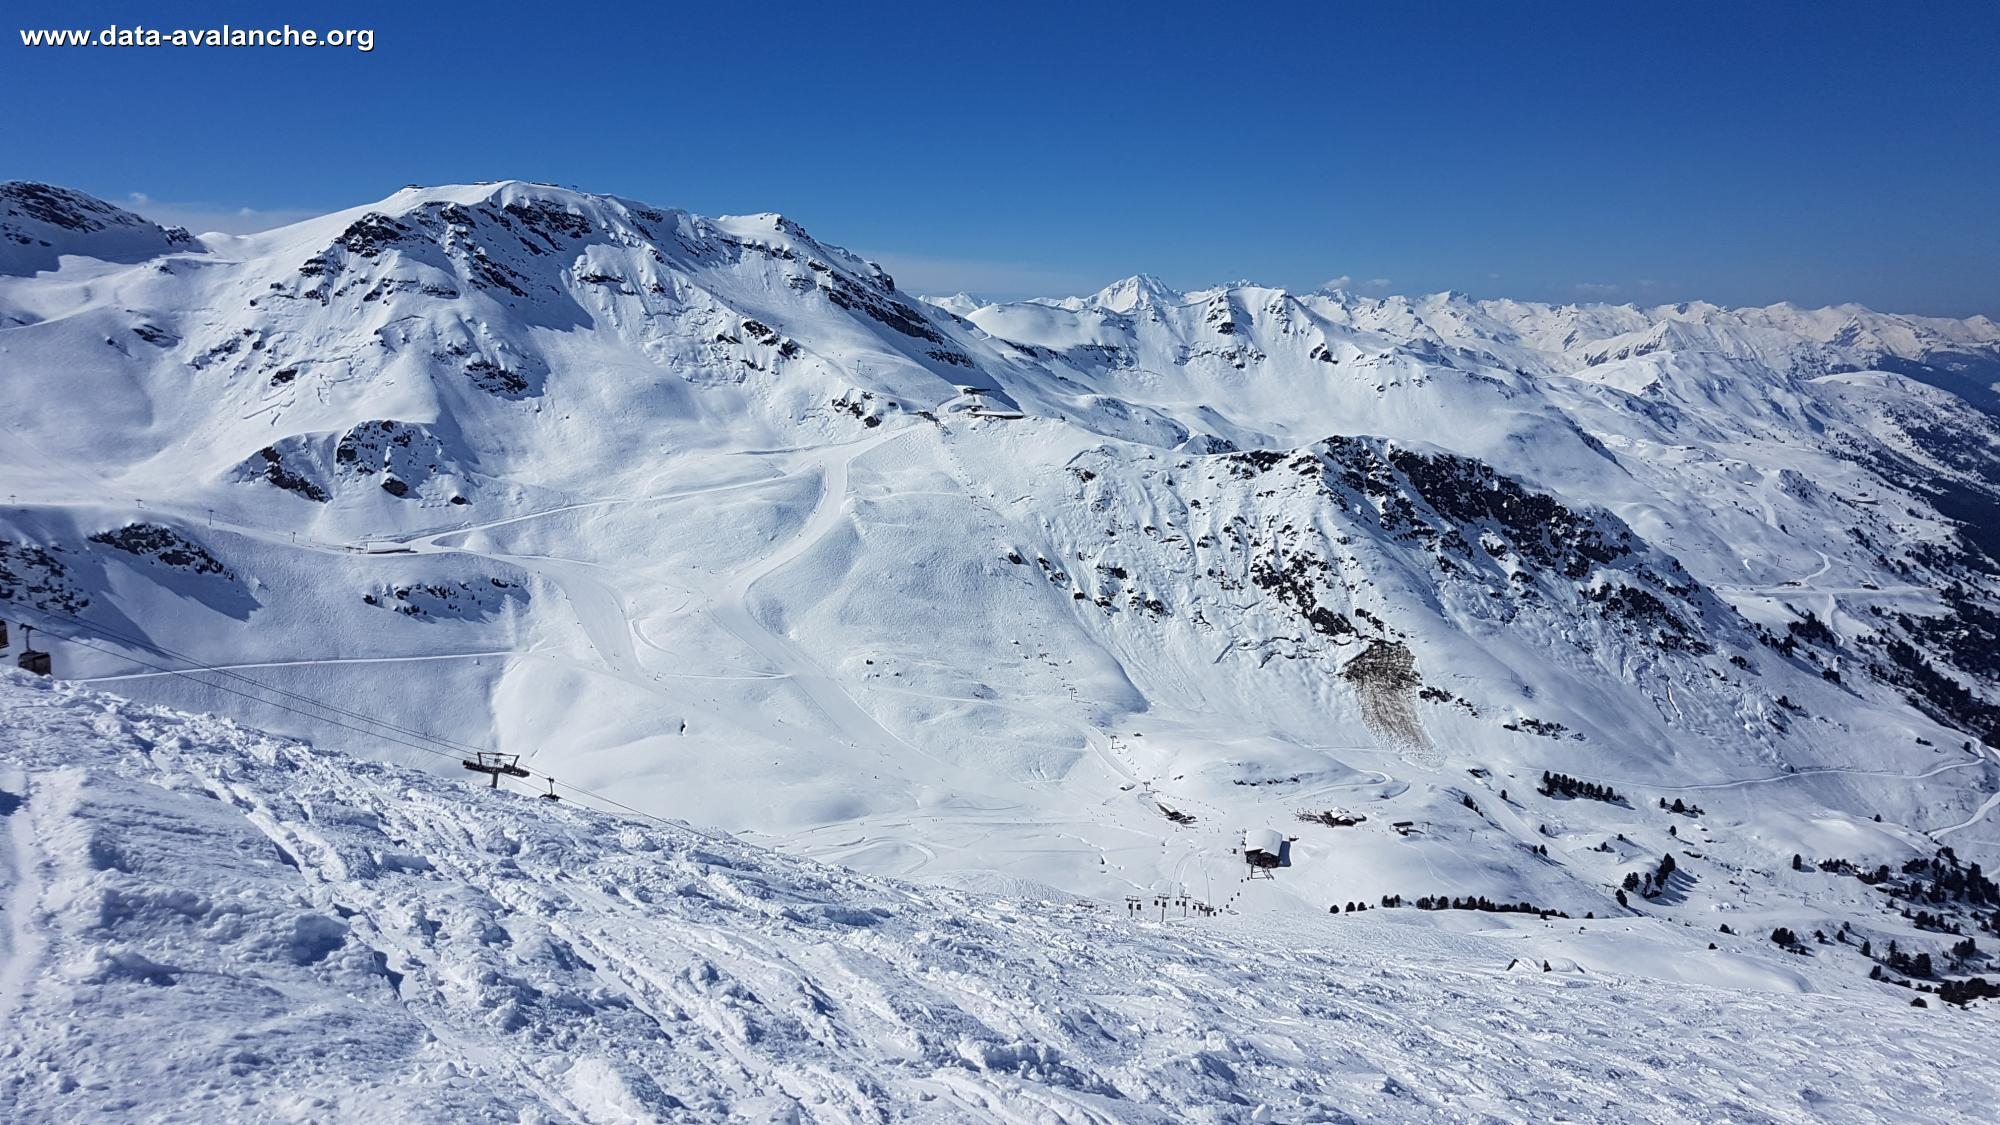 Avalanche Vanoise, Plan des mains - Photo 1